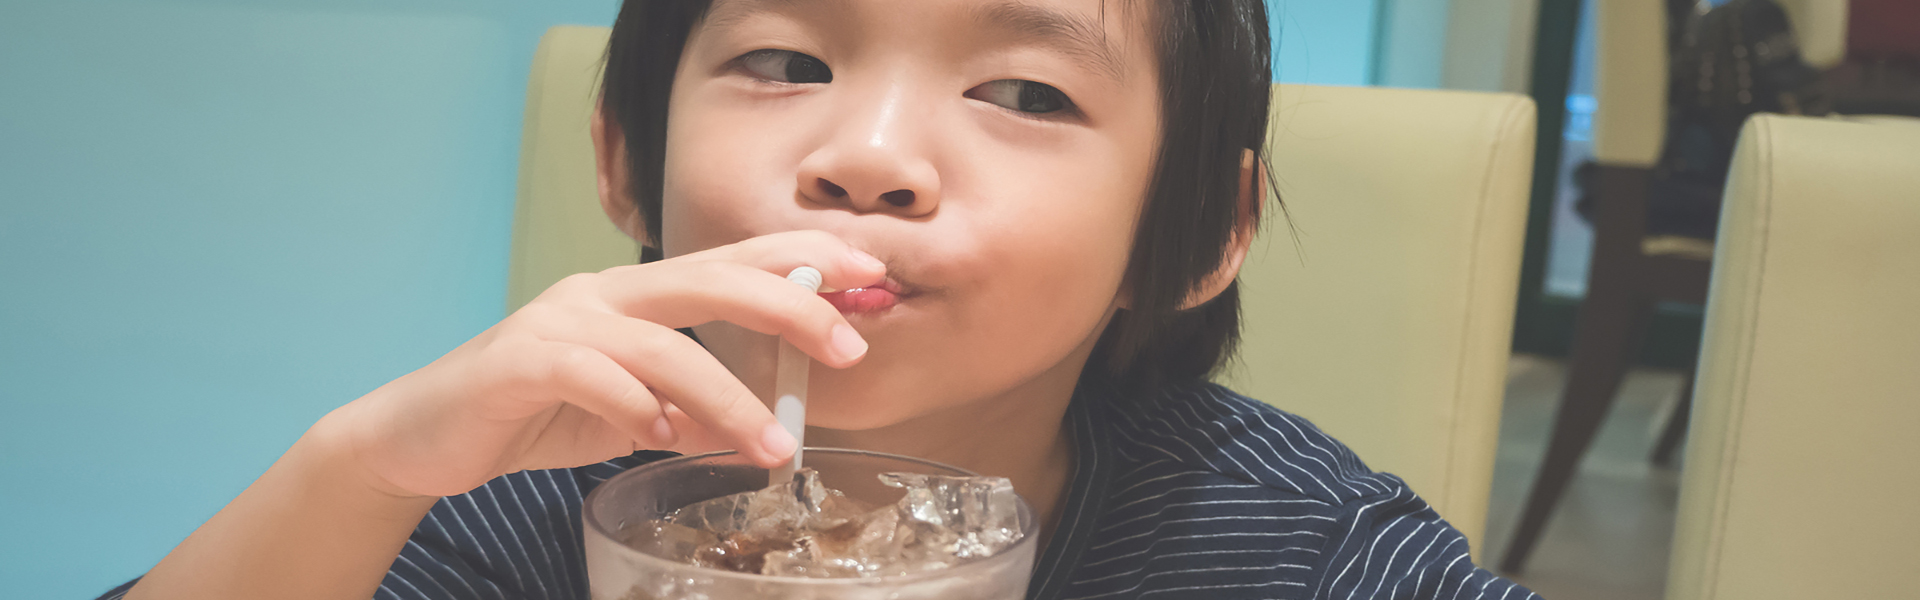 An Analysis of Laws Encouraging Children and Families to Choose Healthy Beverages